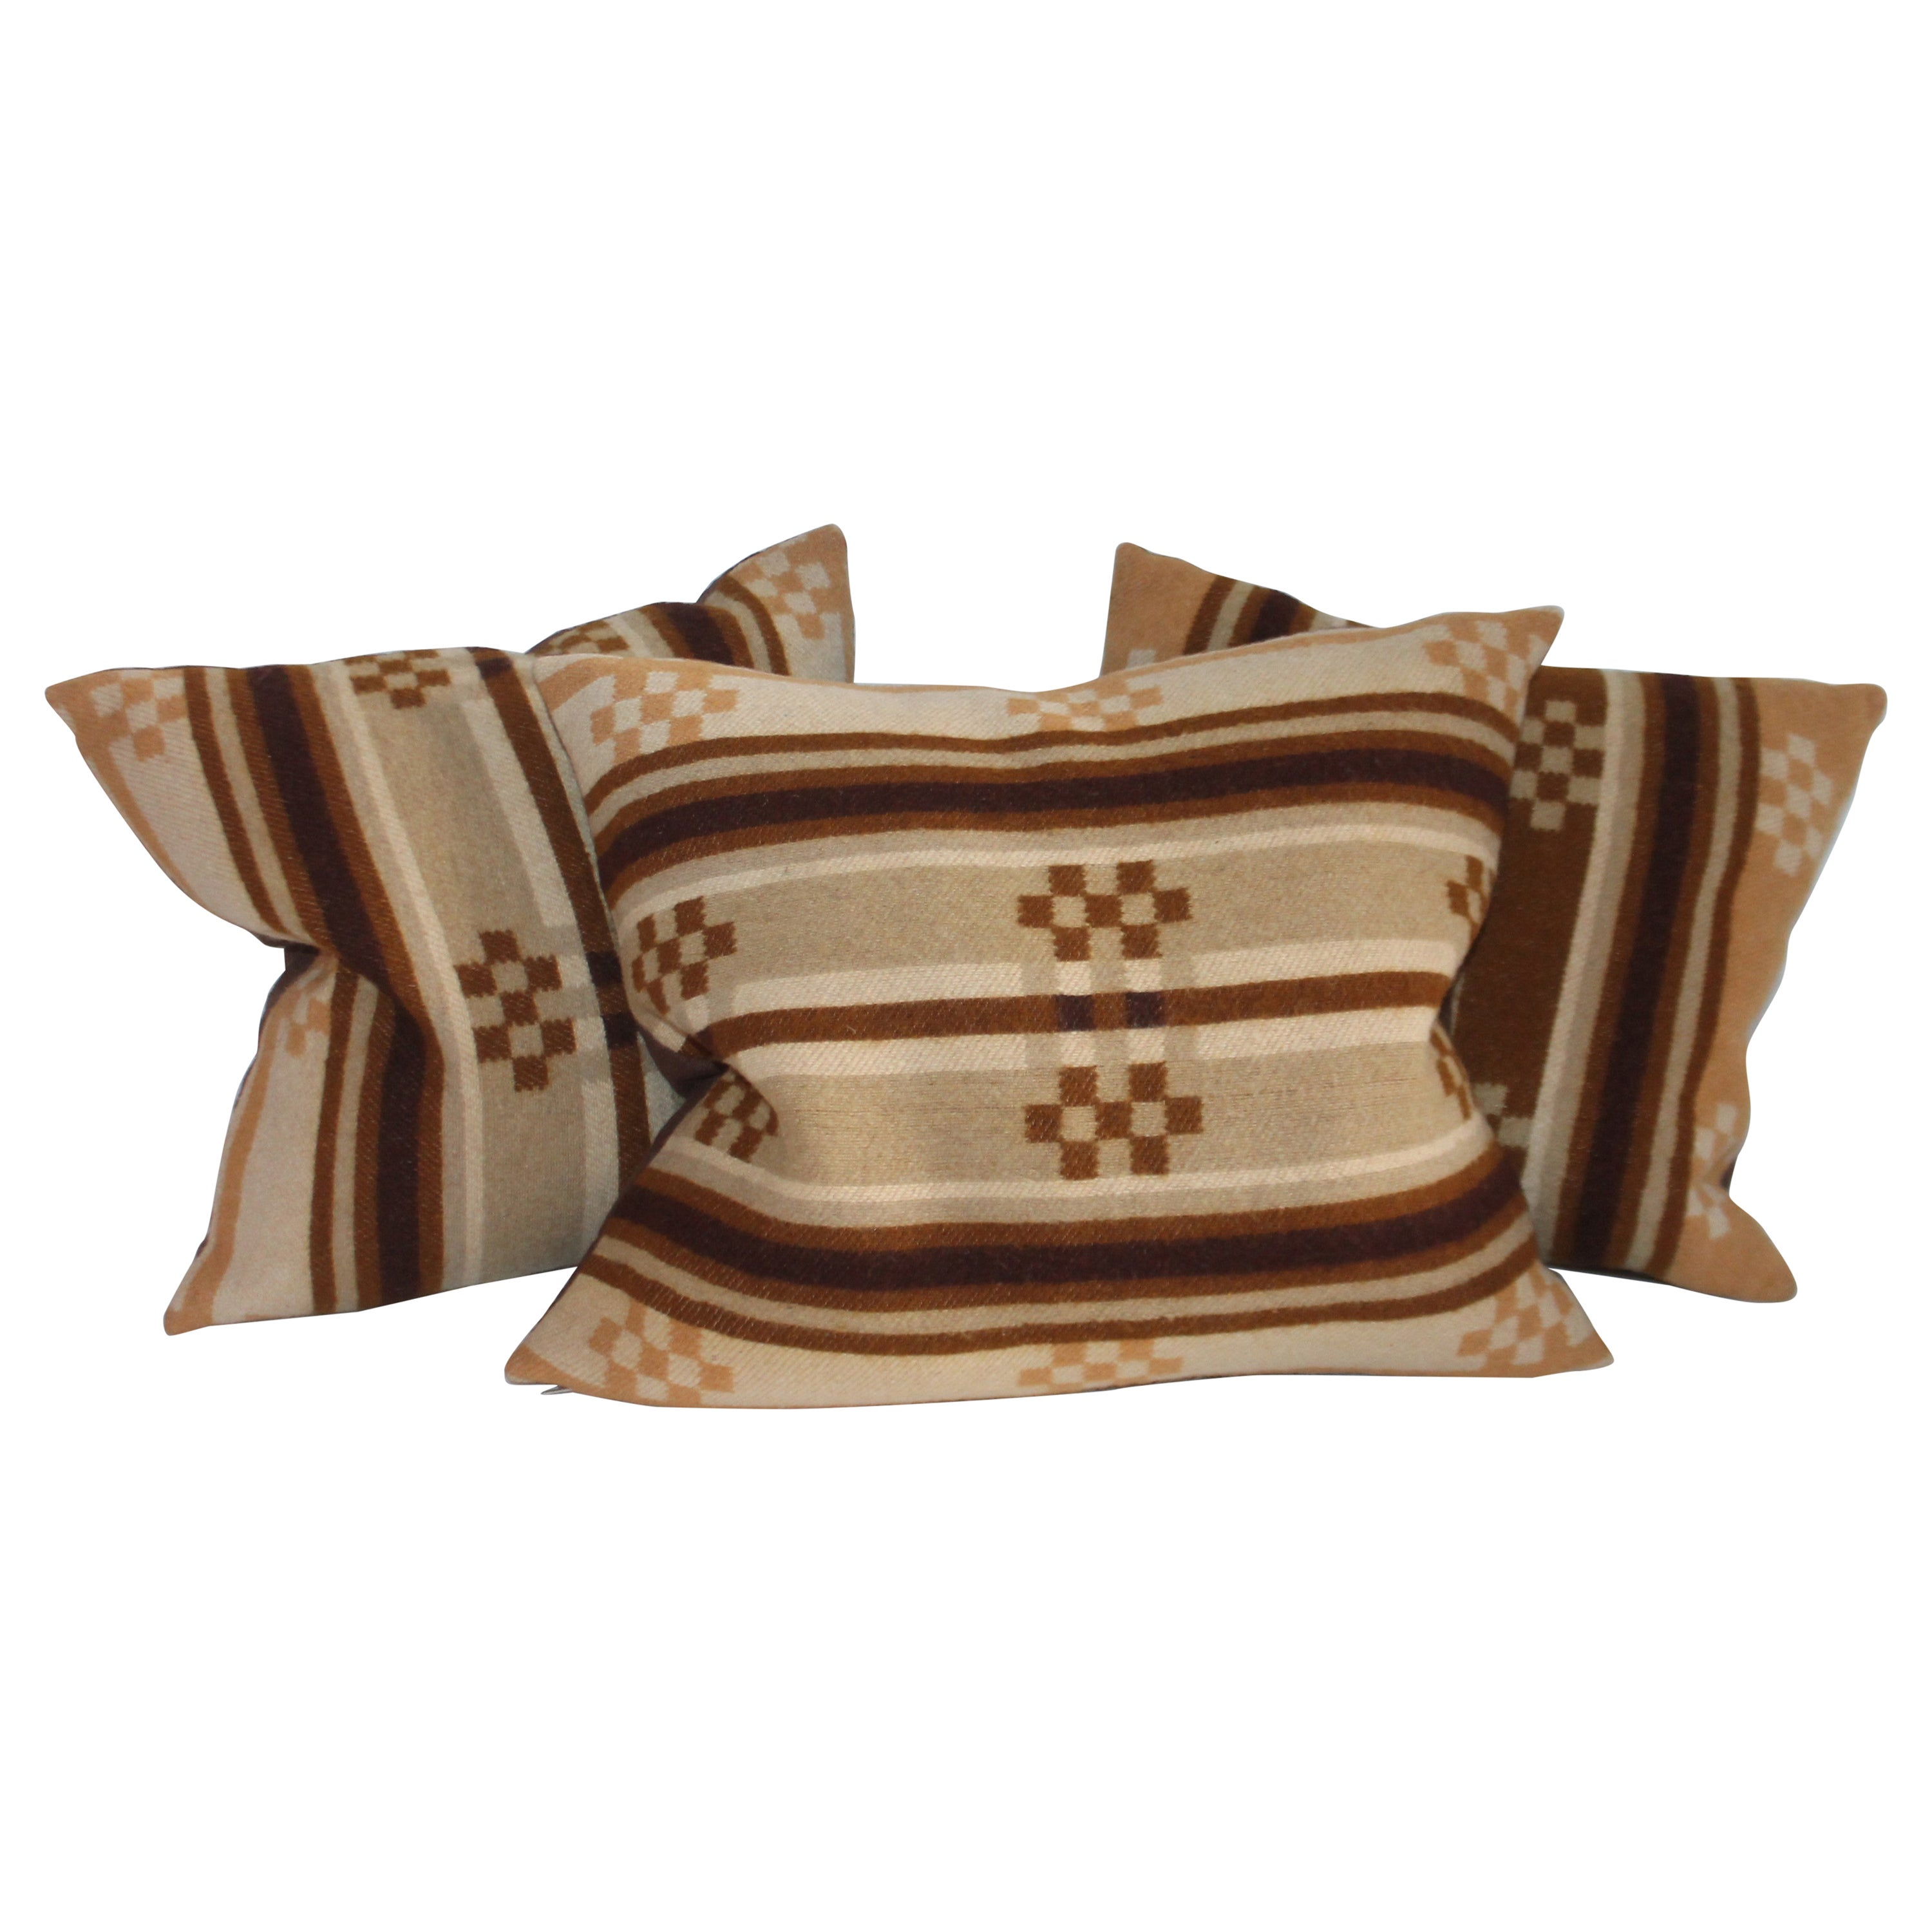 Collection of Three Horse Blanket Pillows